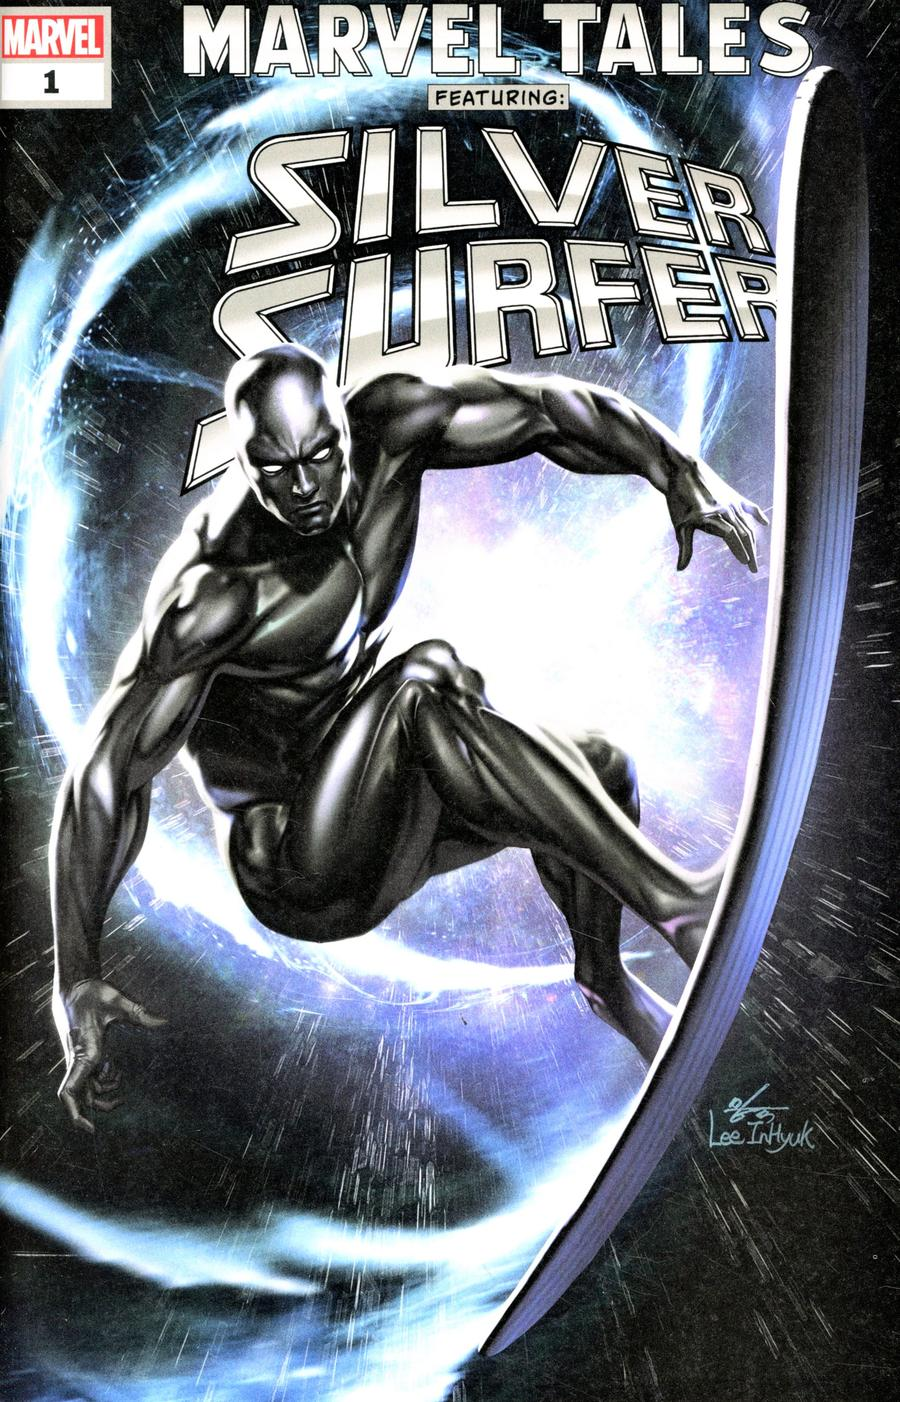 Marvel Tales Silver Surfer #1 Cover A Regular Inhyuk Lee Cover